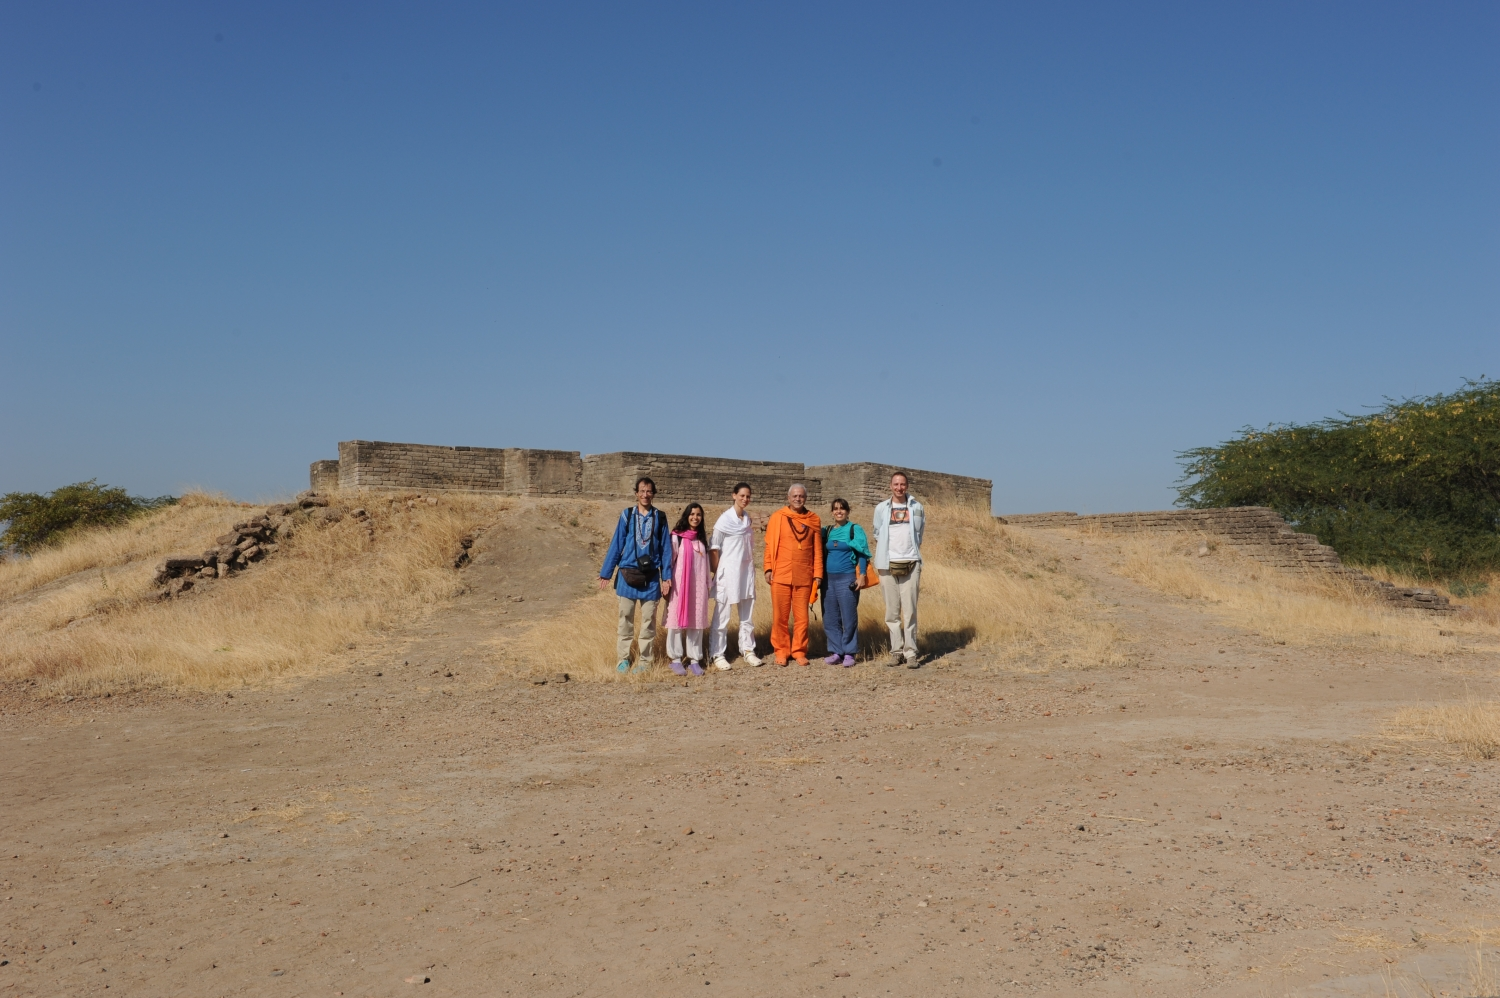 Archeological site of Lothal, India - 2012, December